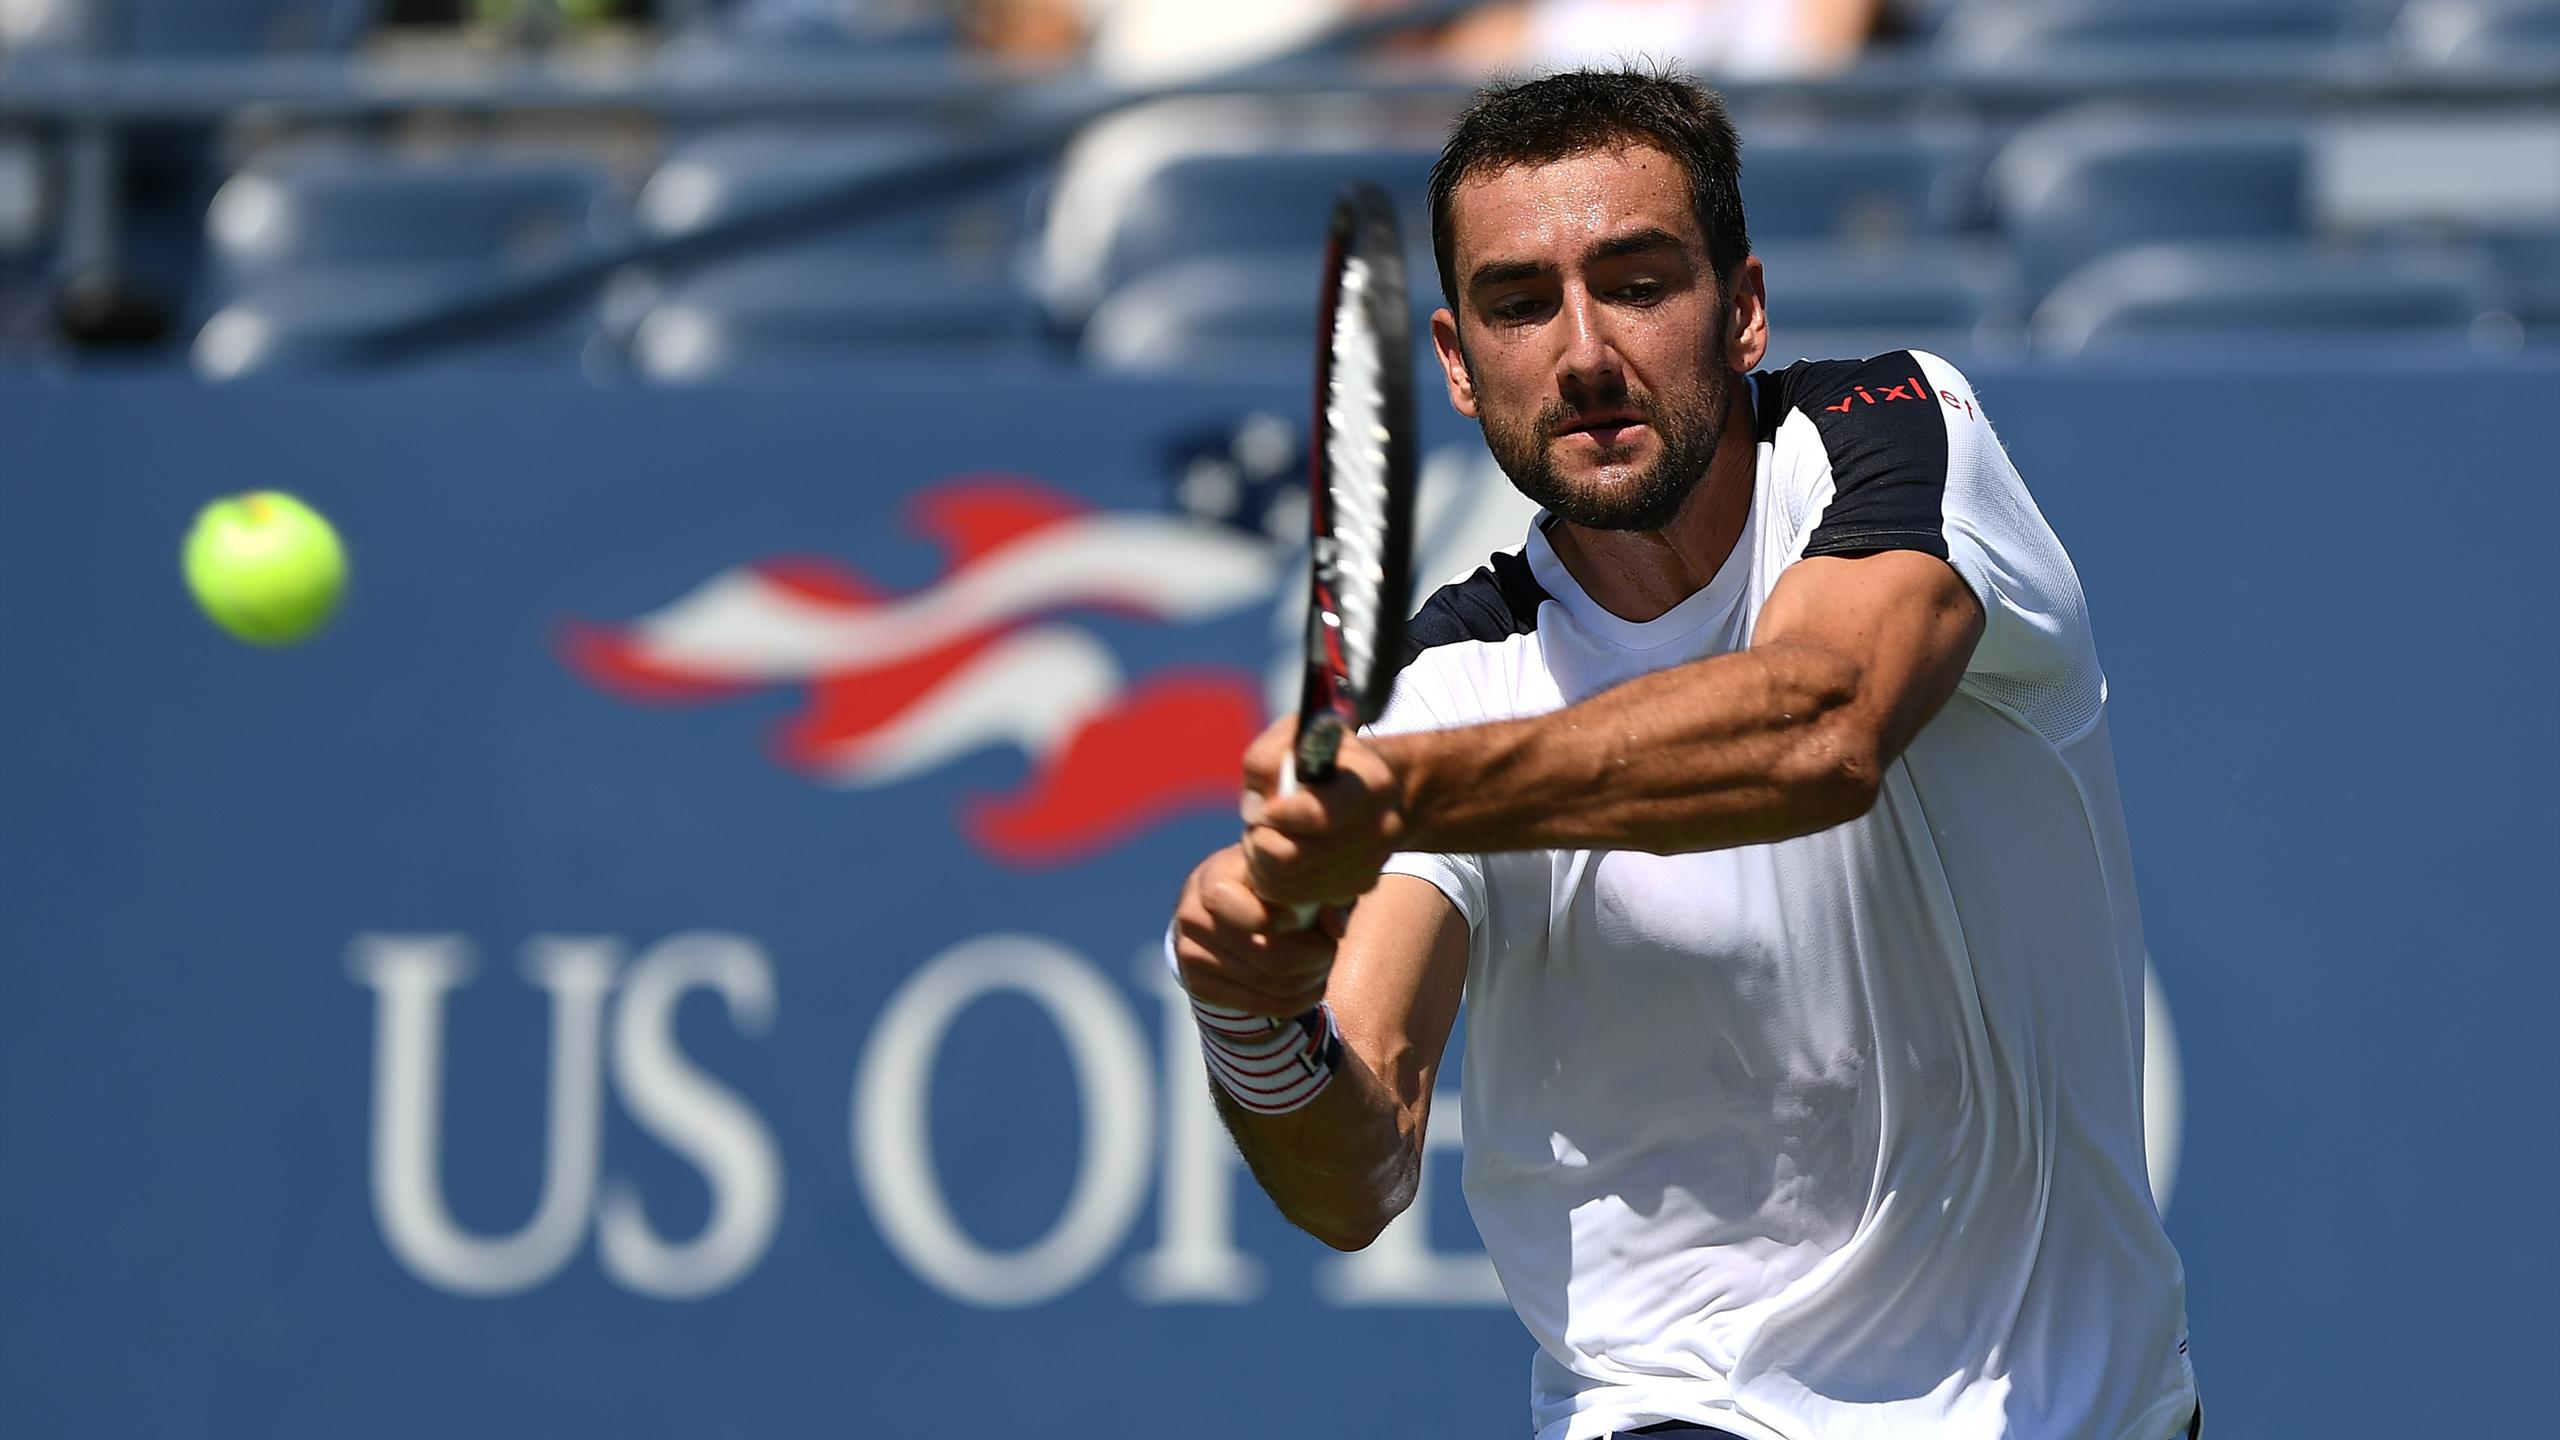 Marin Cilic looking to qualify for the ATP Finals this ... |Marin Cilic Tennis Player